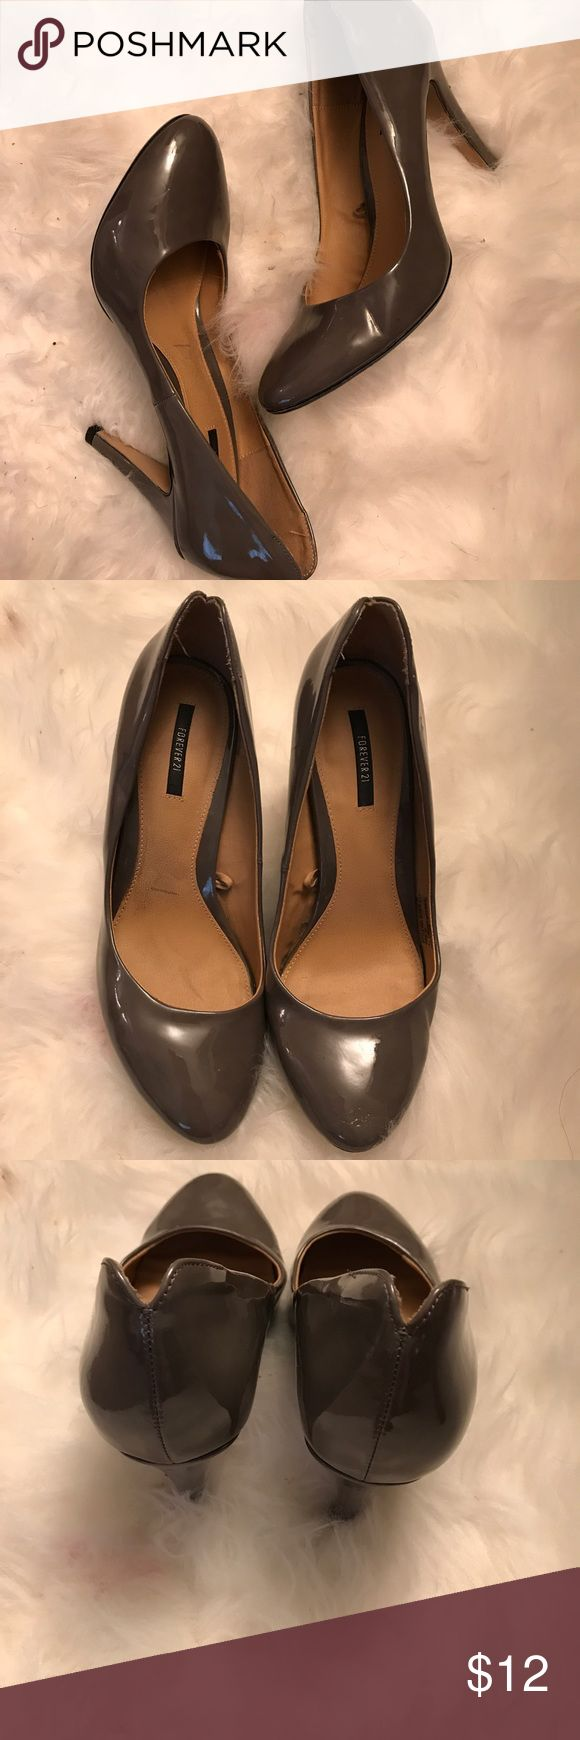 Grey Pumps (Forever21) Cute Paten grey Pumps. Size 9 women's 3inch heel Forever 21 Shoes Heels